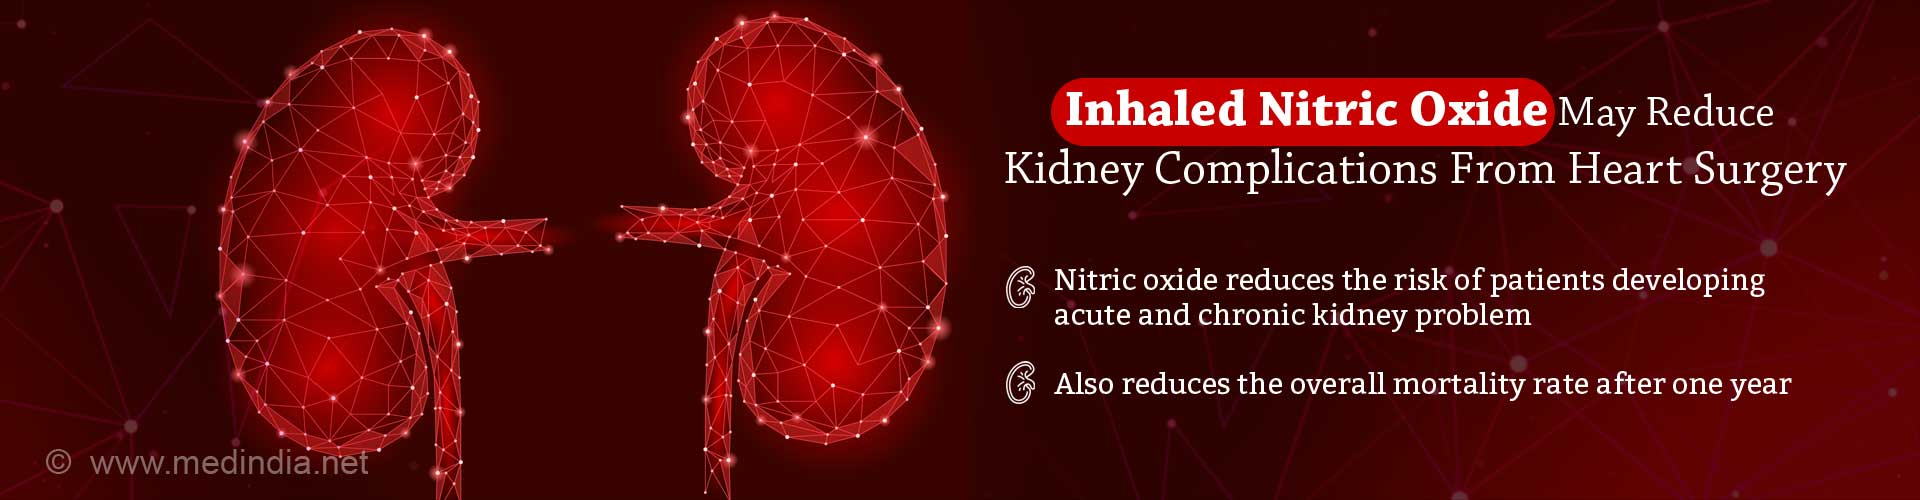 Nitric Oxide Lowers Risk of Kidney Complications from Heart Surgery